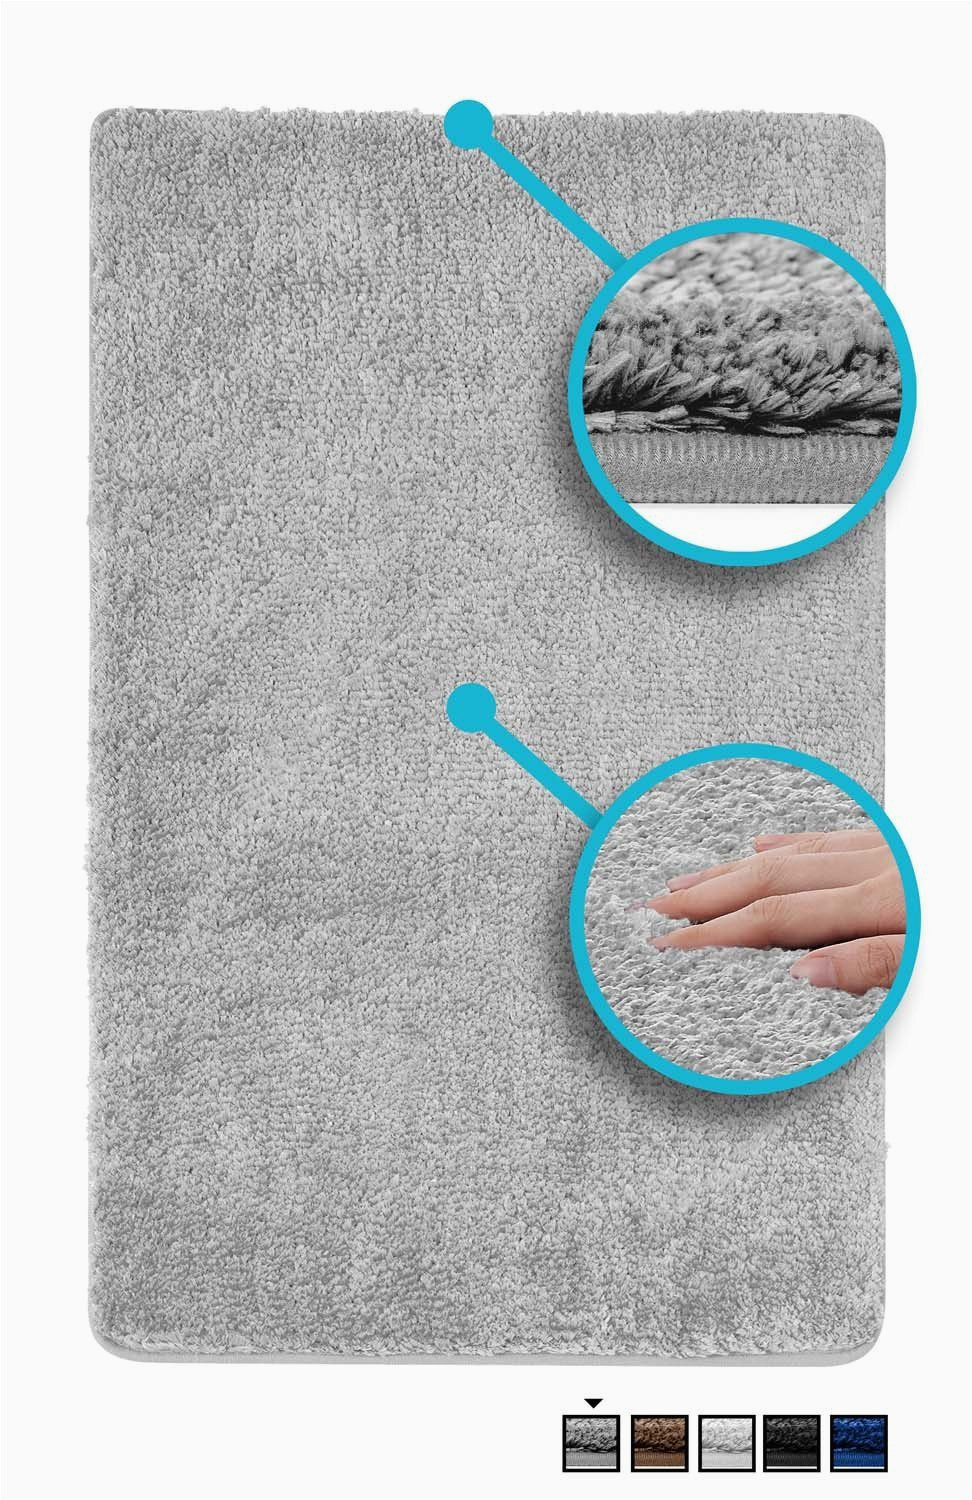 luxe bath mat bath rug non slip backing microfiber microdry bath mat 19 5 x 31 5 in brown